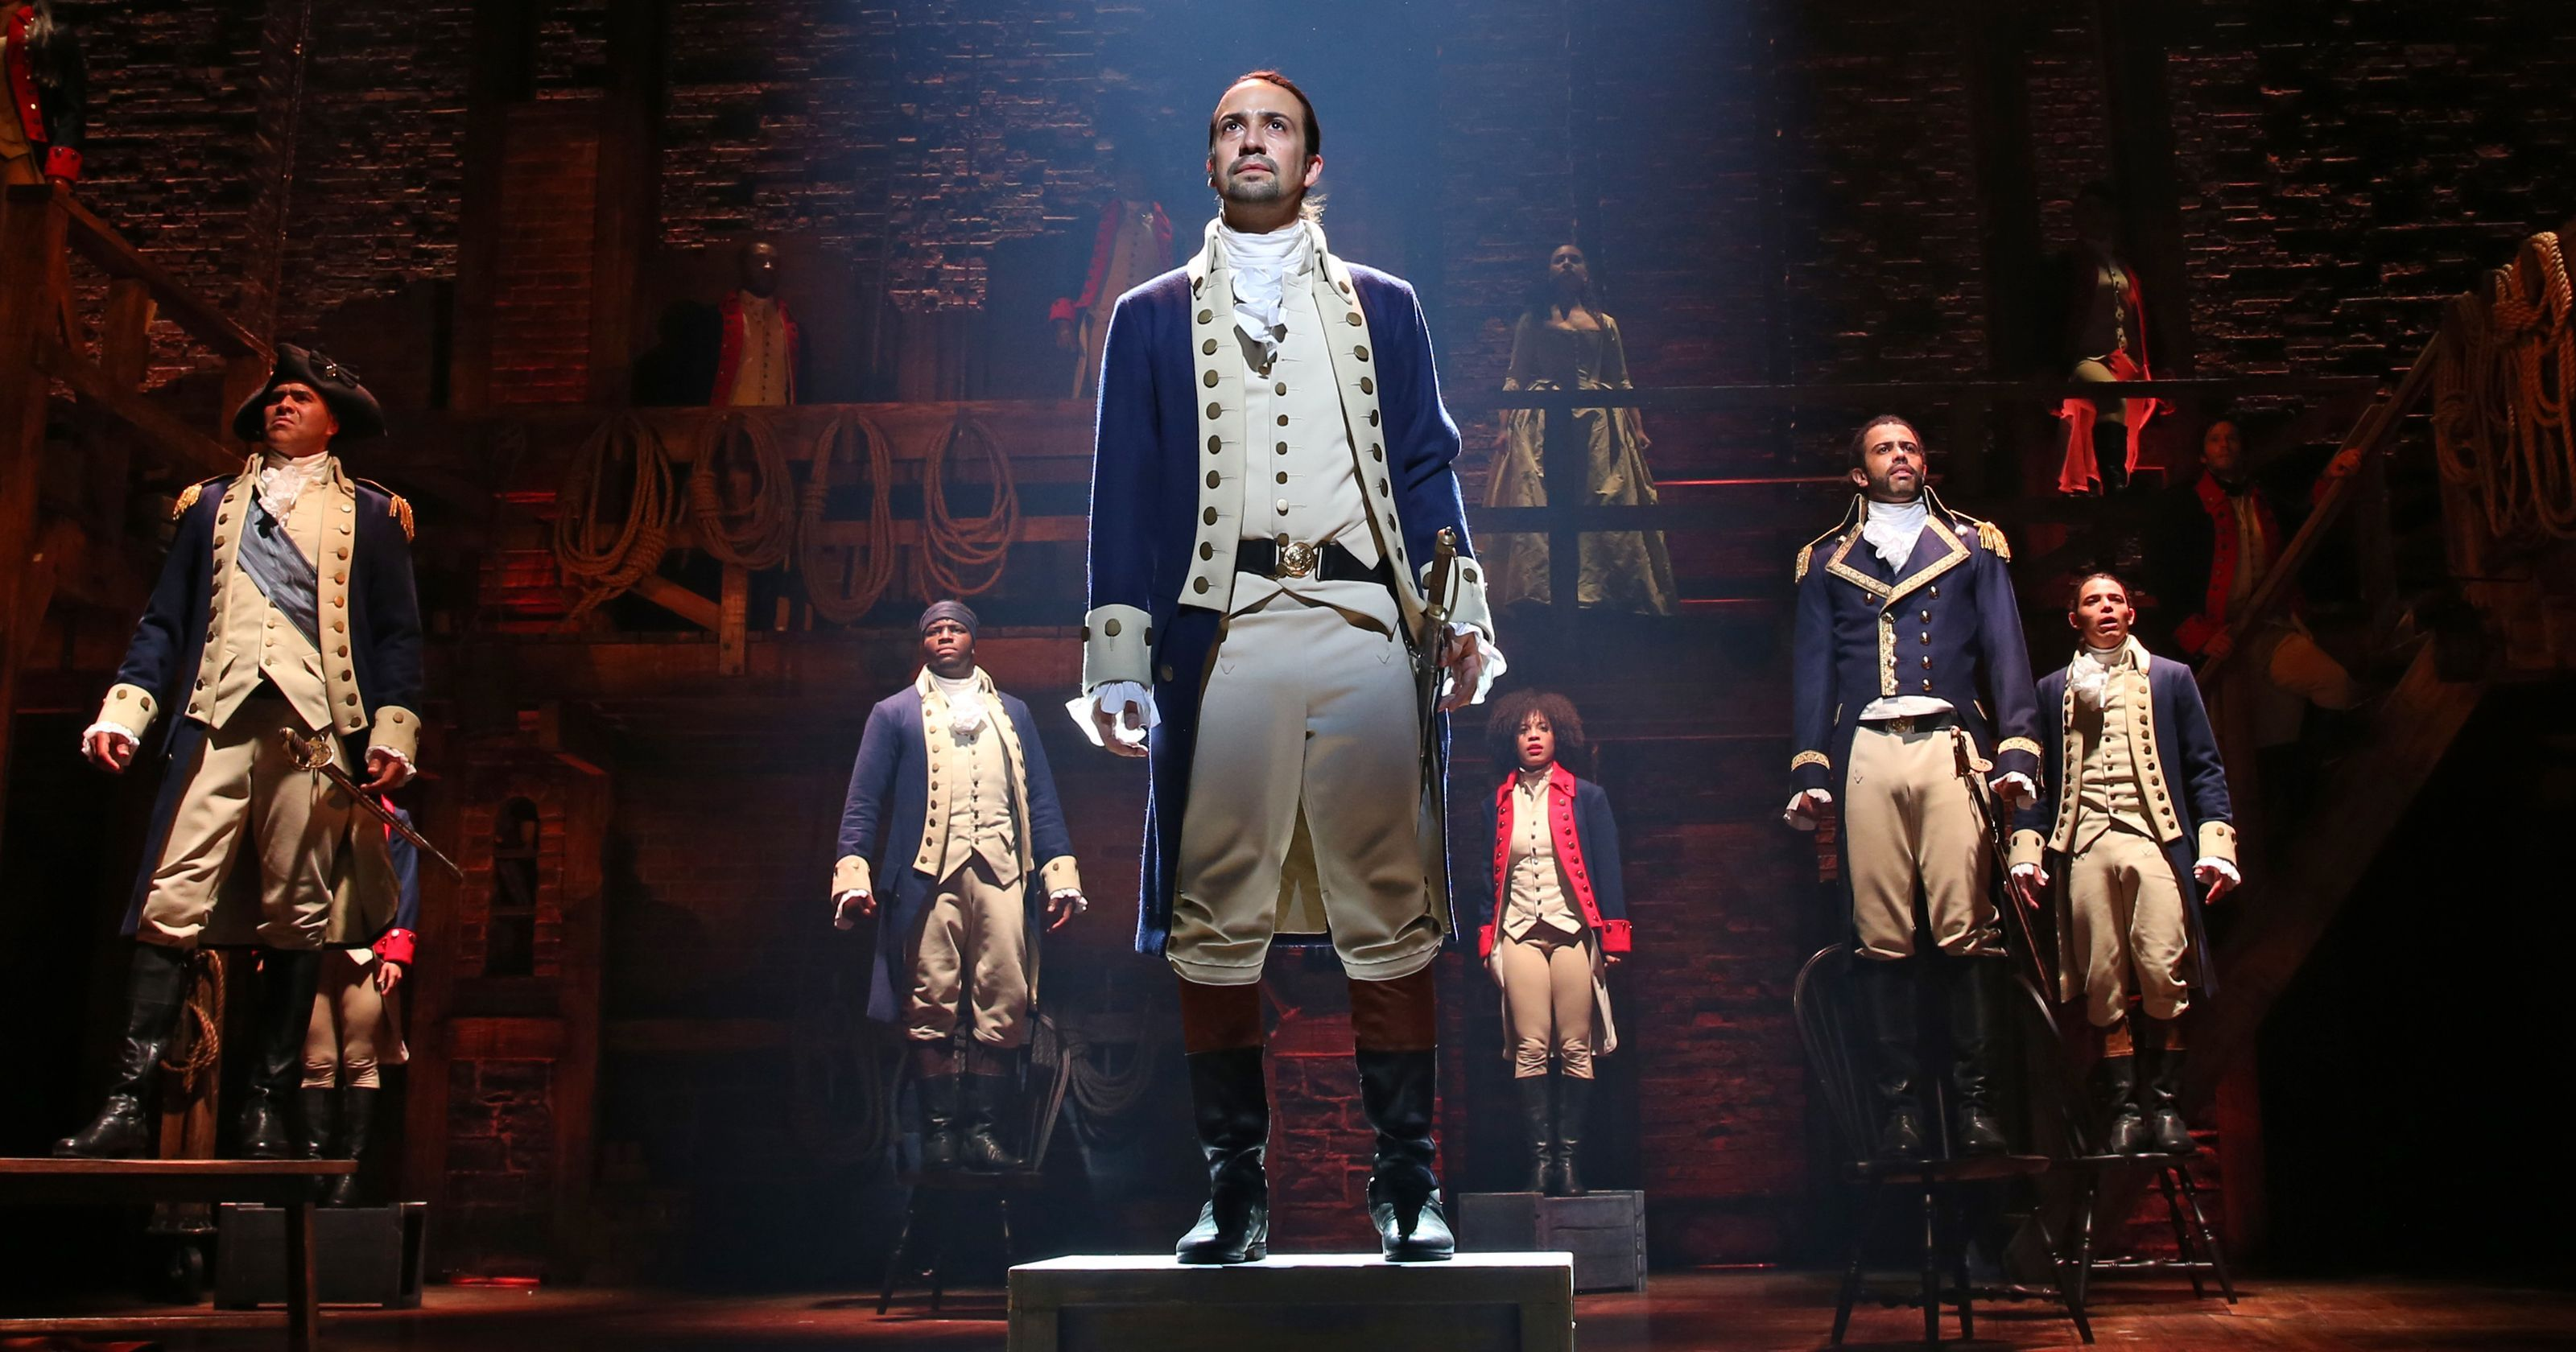 15 Things You Didn't Know About Everyone's Favorite Musical, Hamilton